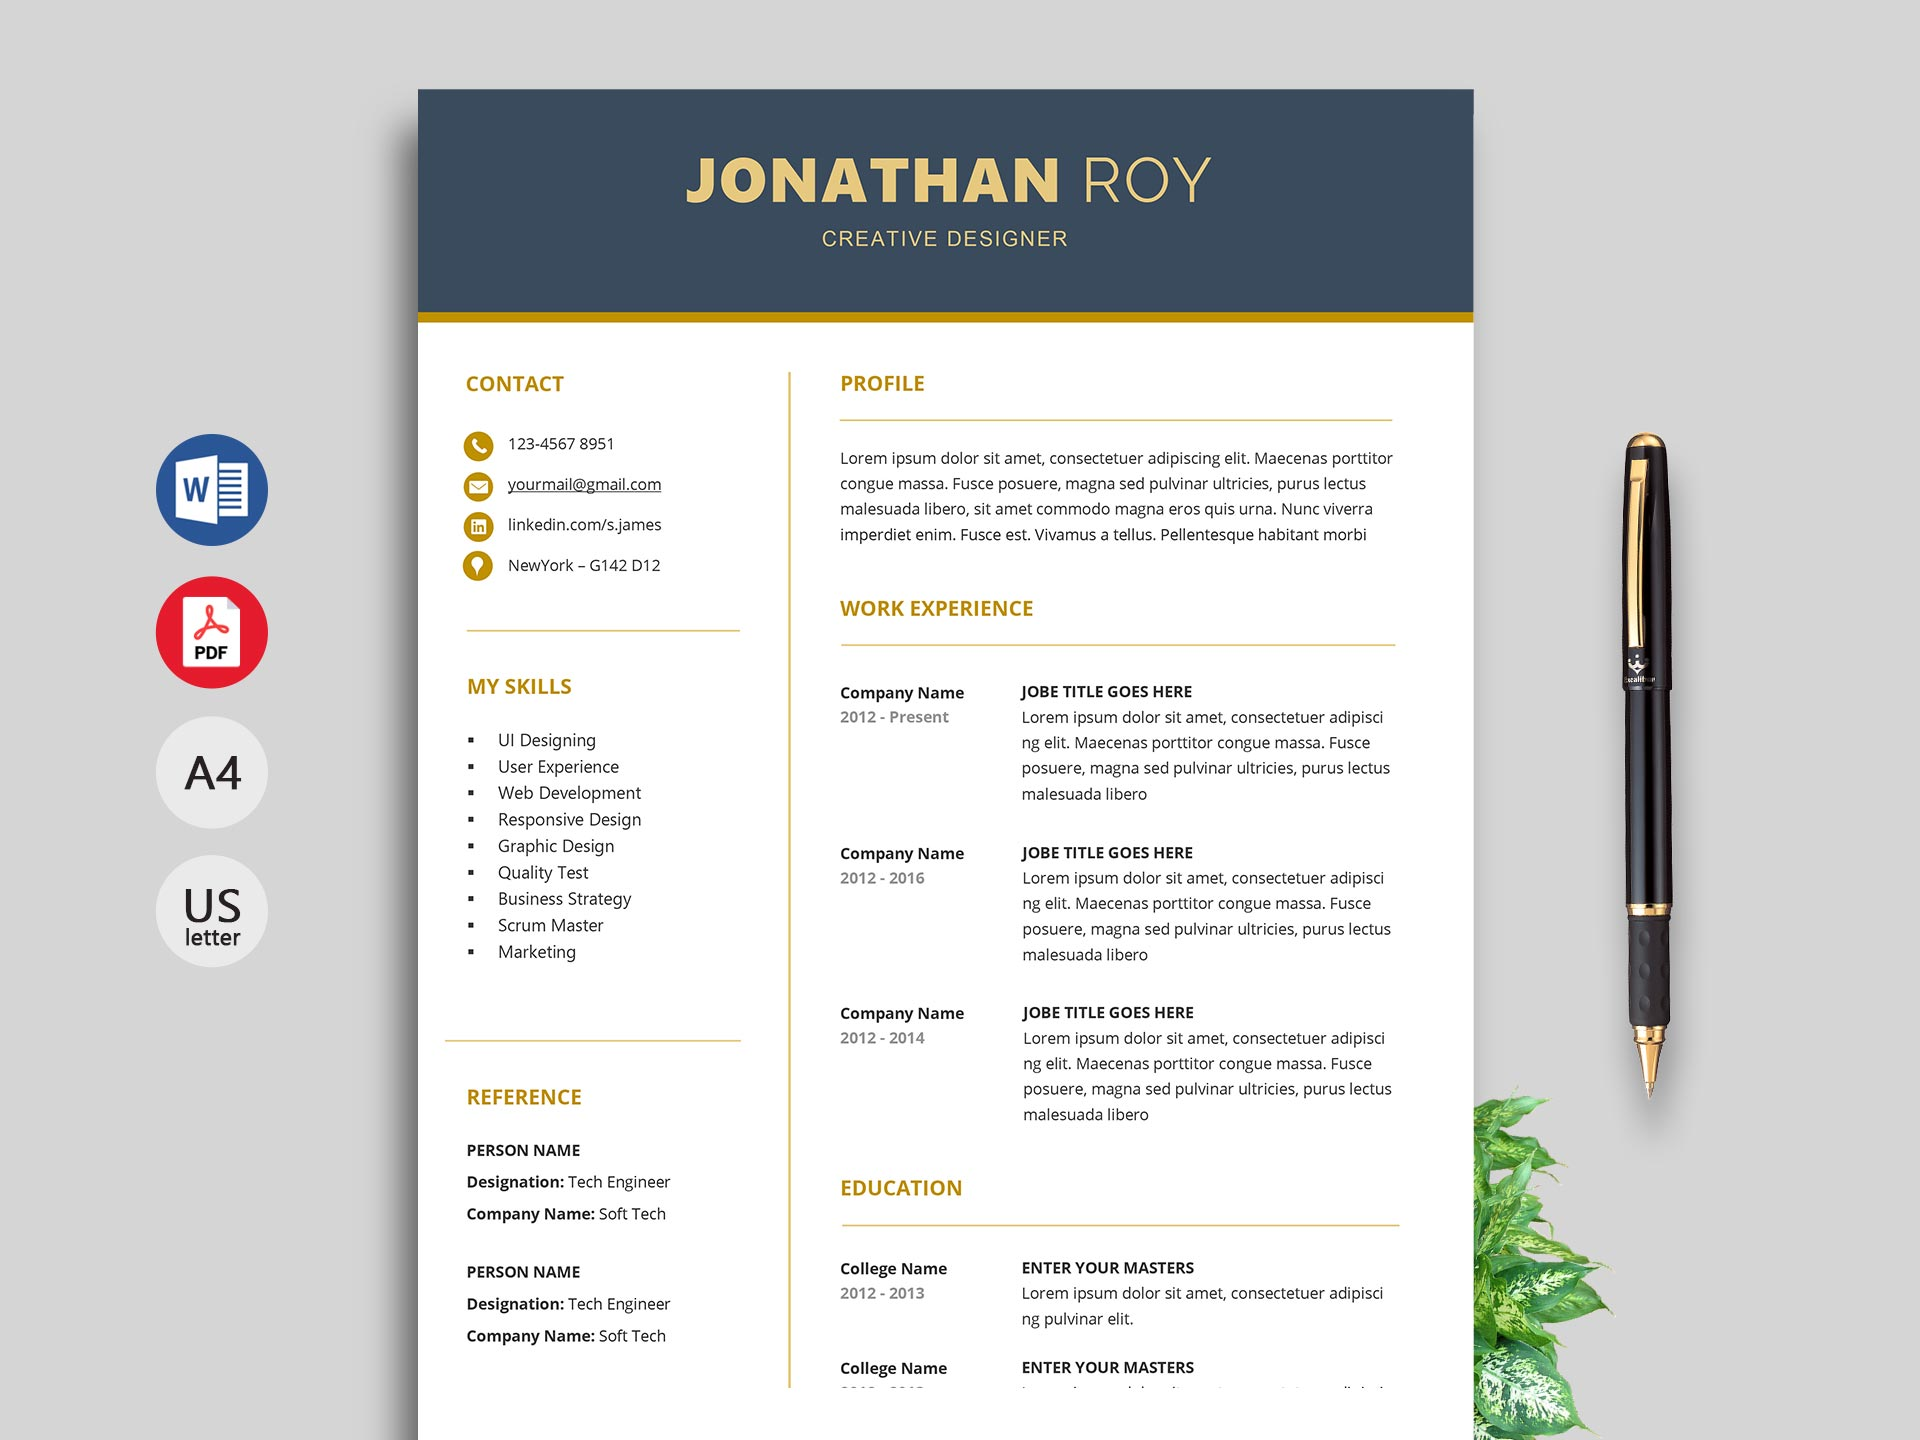 simple resume format cv template free examples gain tips for writing good ivanka trump Resume Free Resume Examples 2020